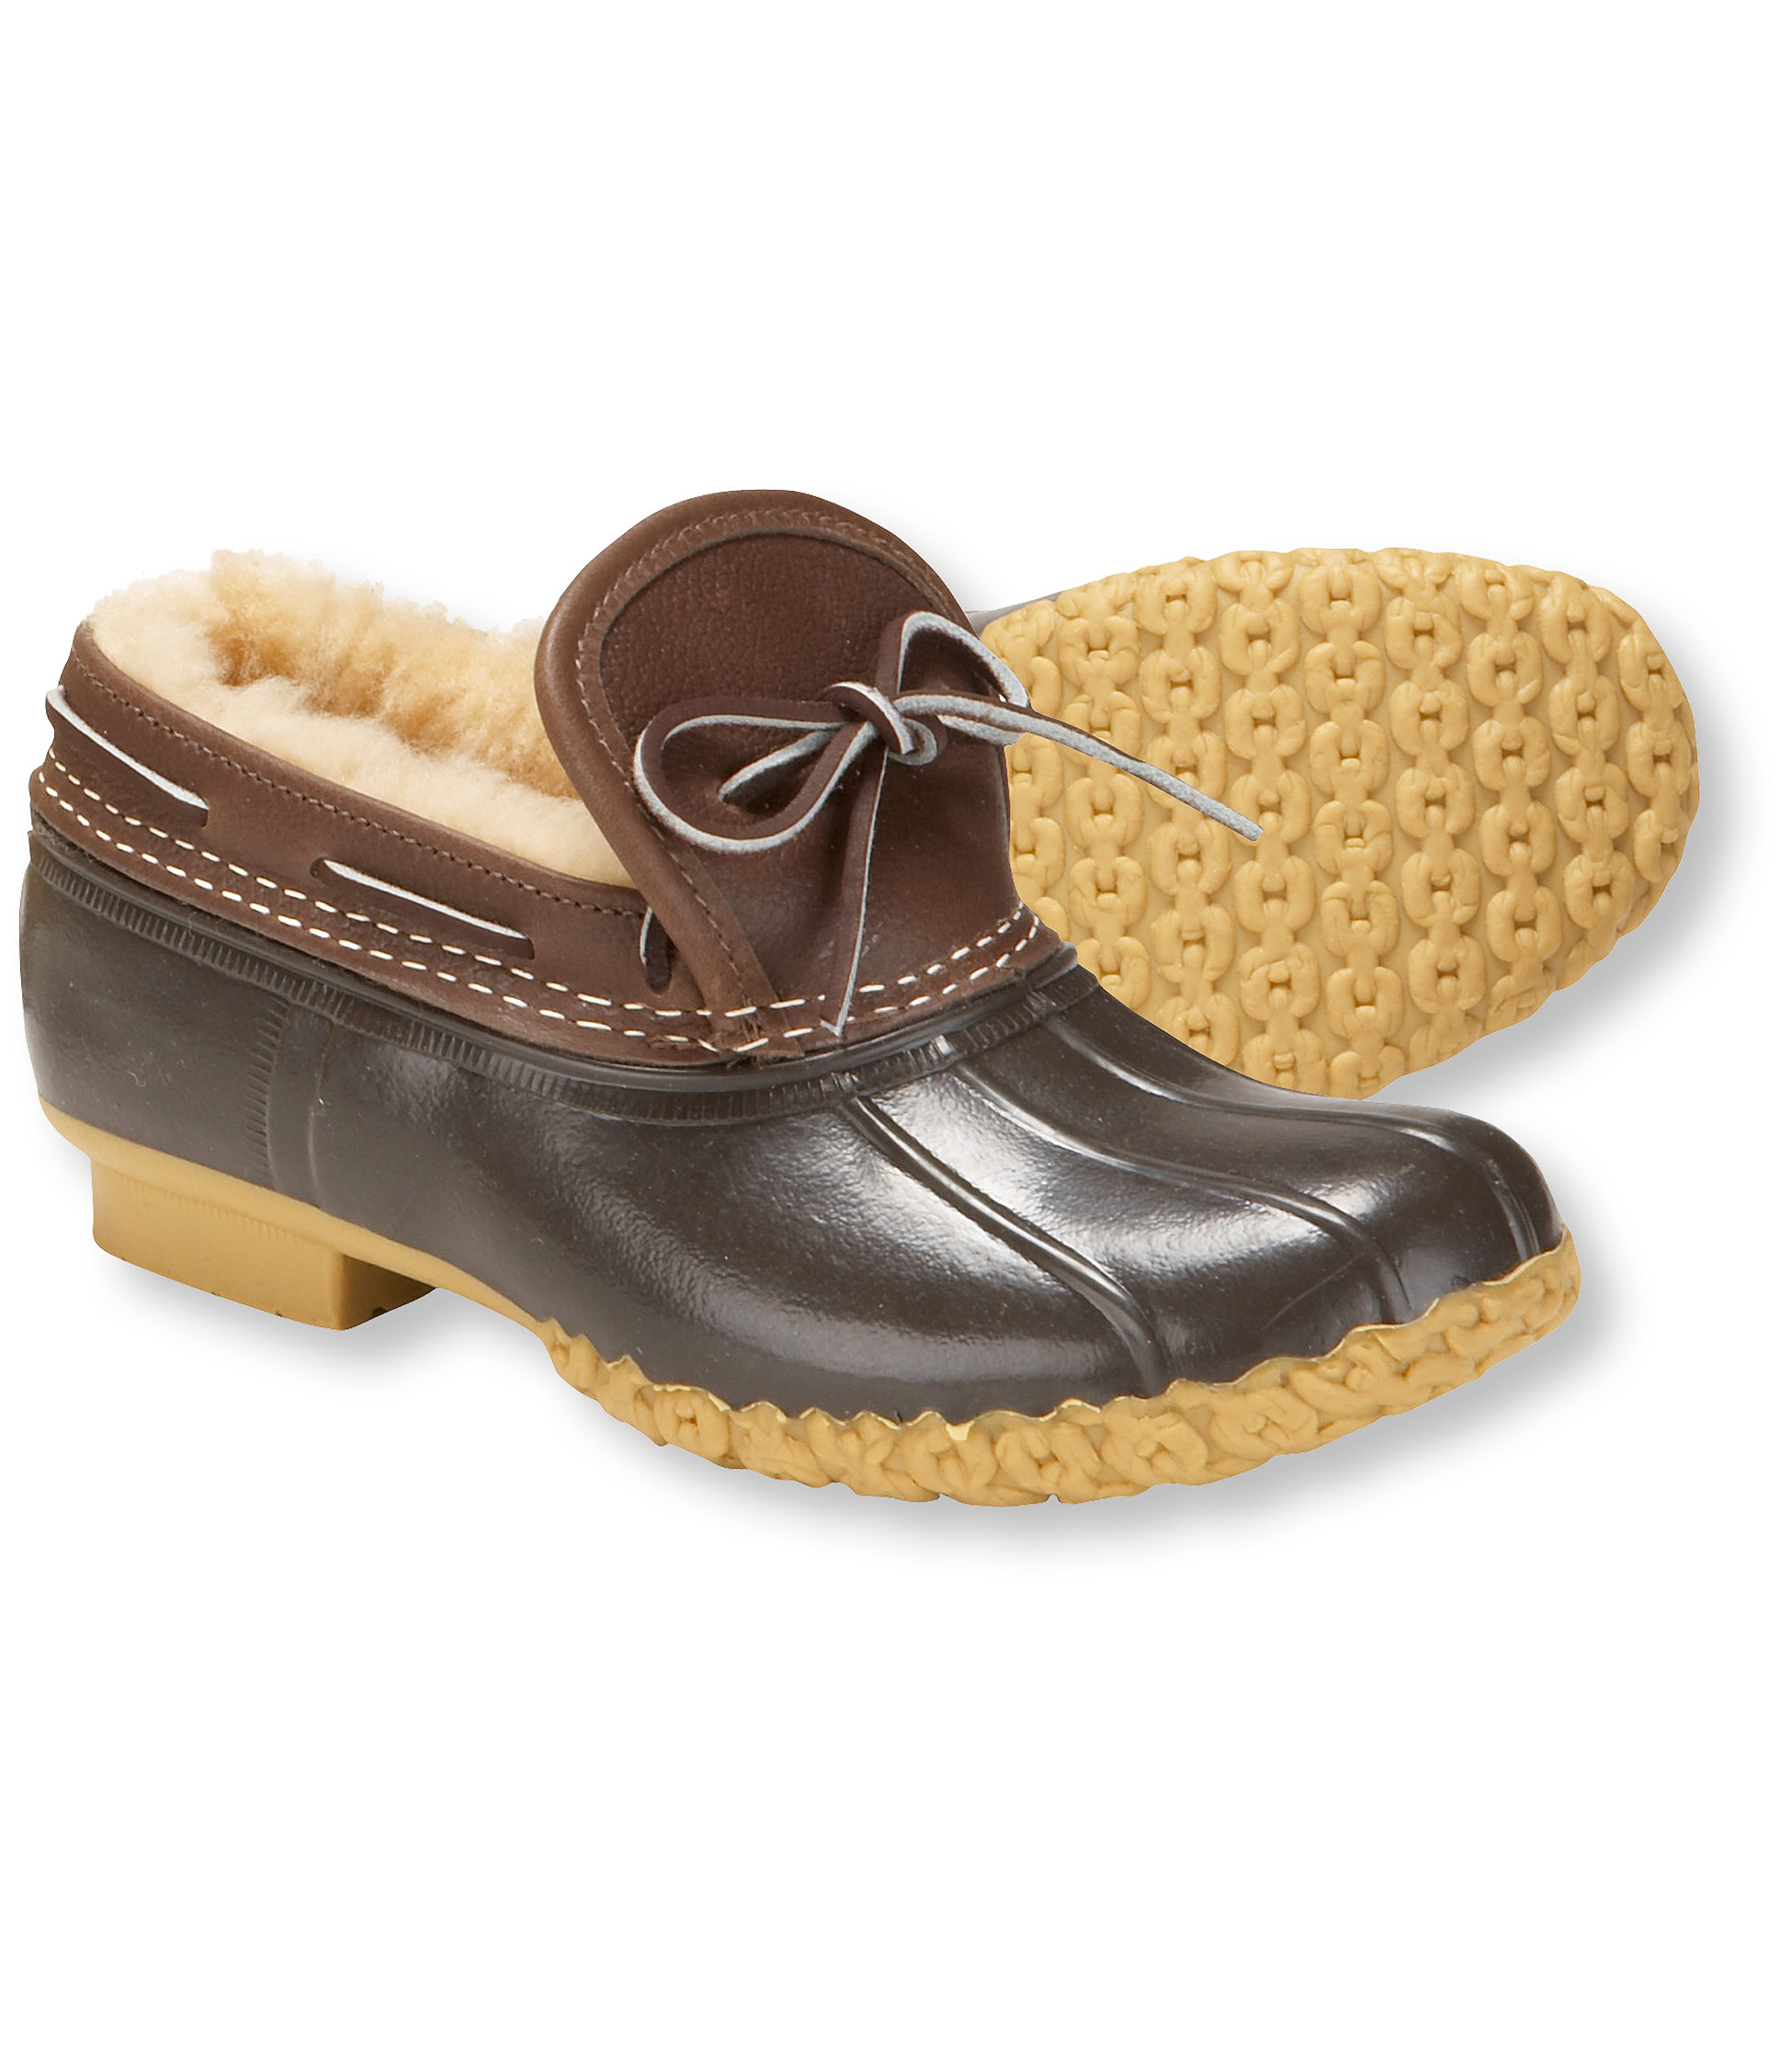 photo: L.L.Bean Bean Boots, Moccasins Shearling-Lined winter boot